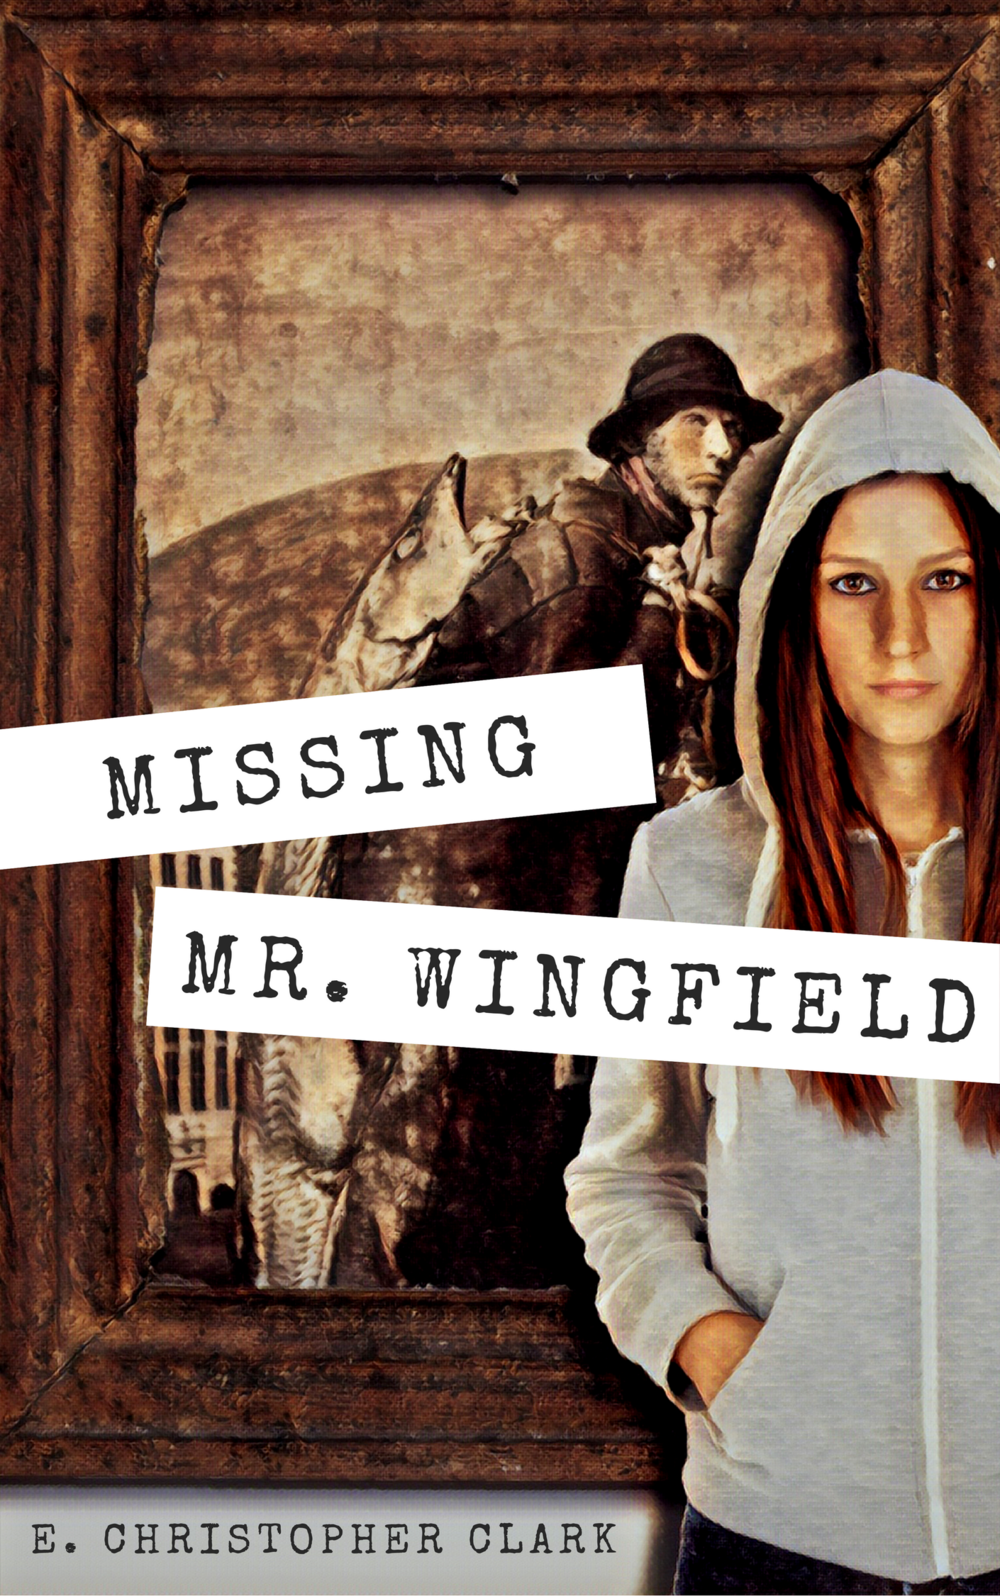 Cover of the novel MISSING MR. WINGFIELD by E. Christopher Clark